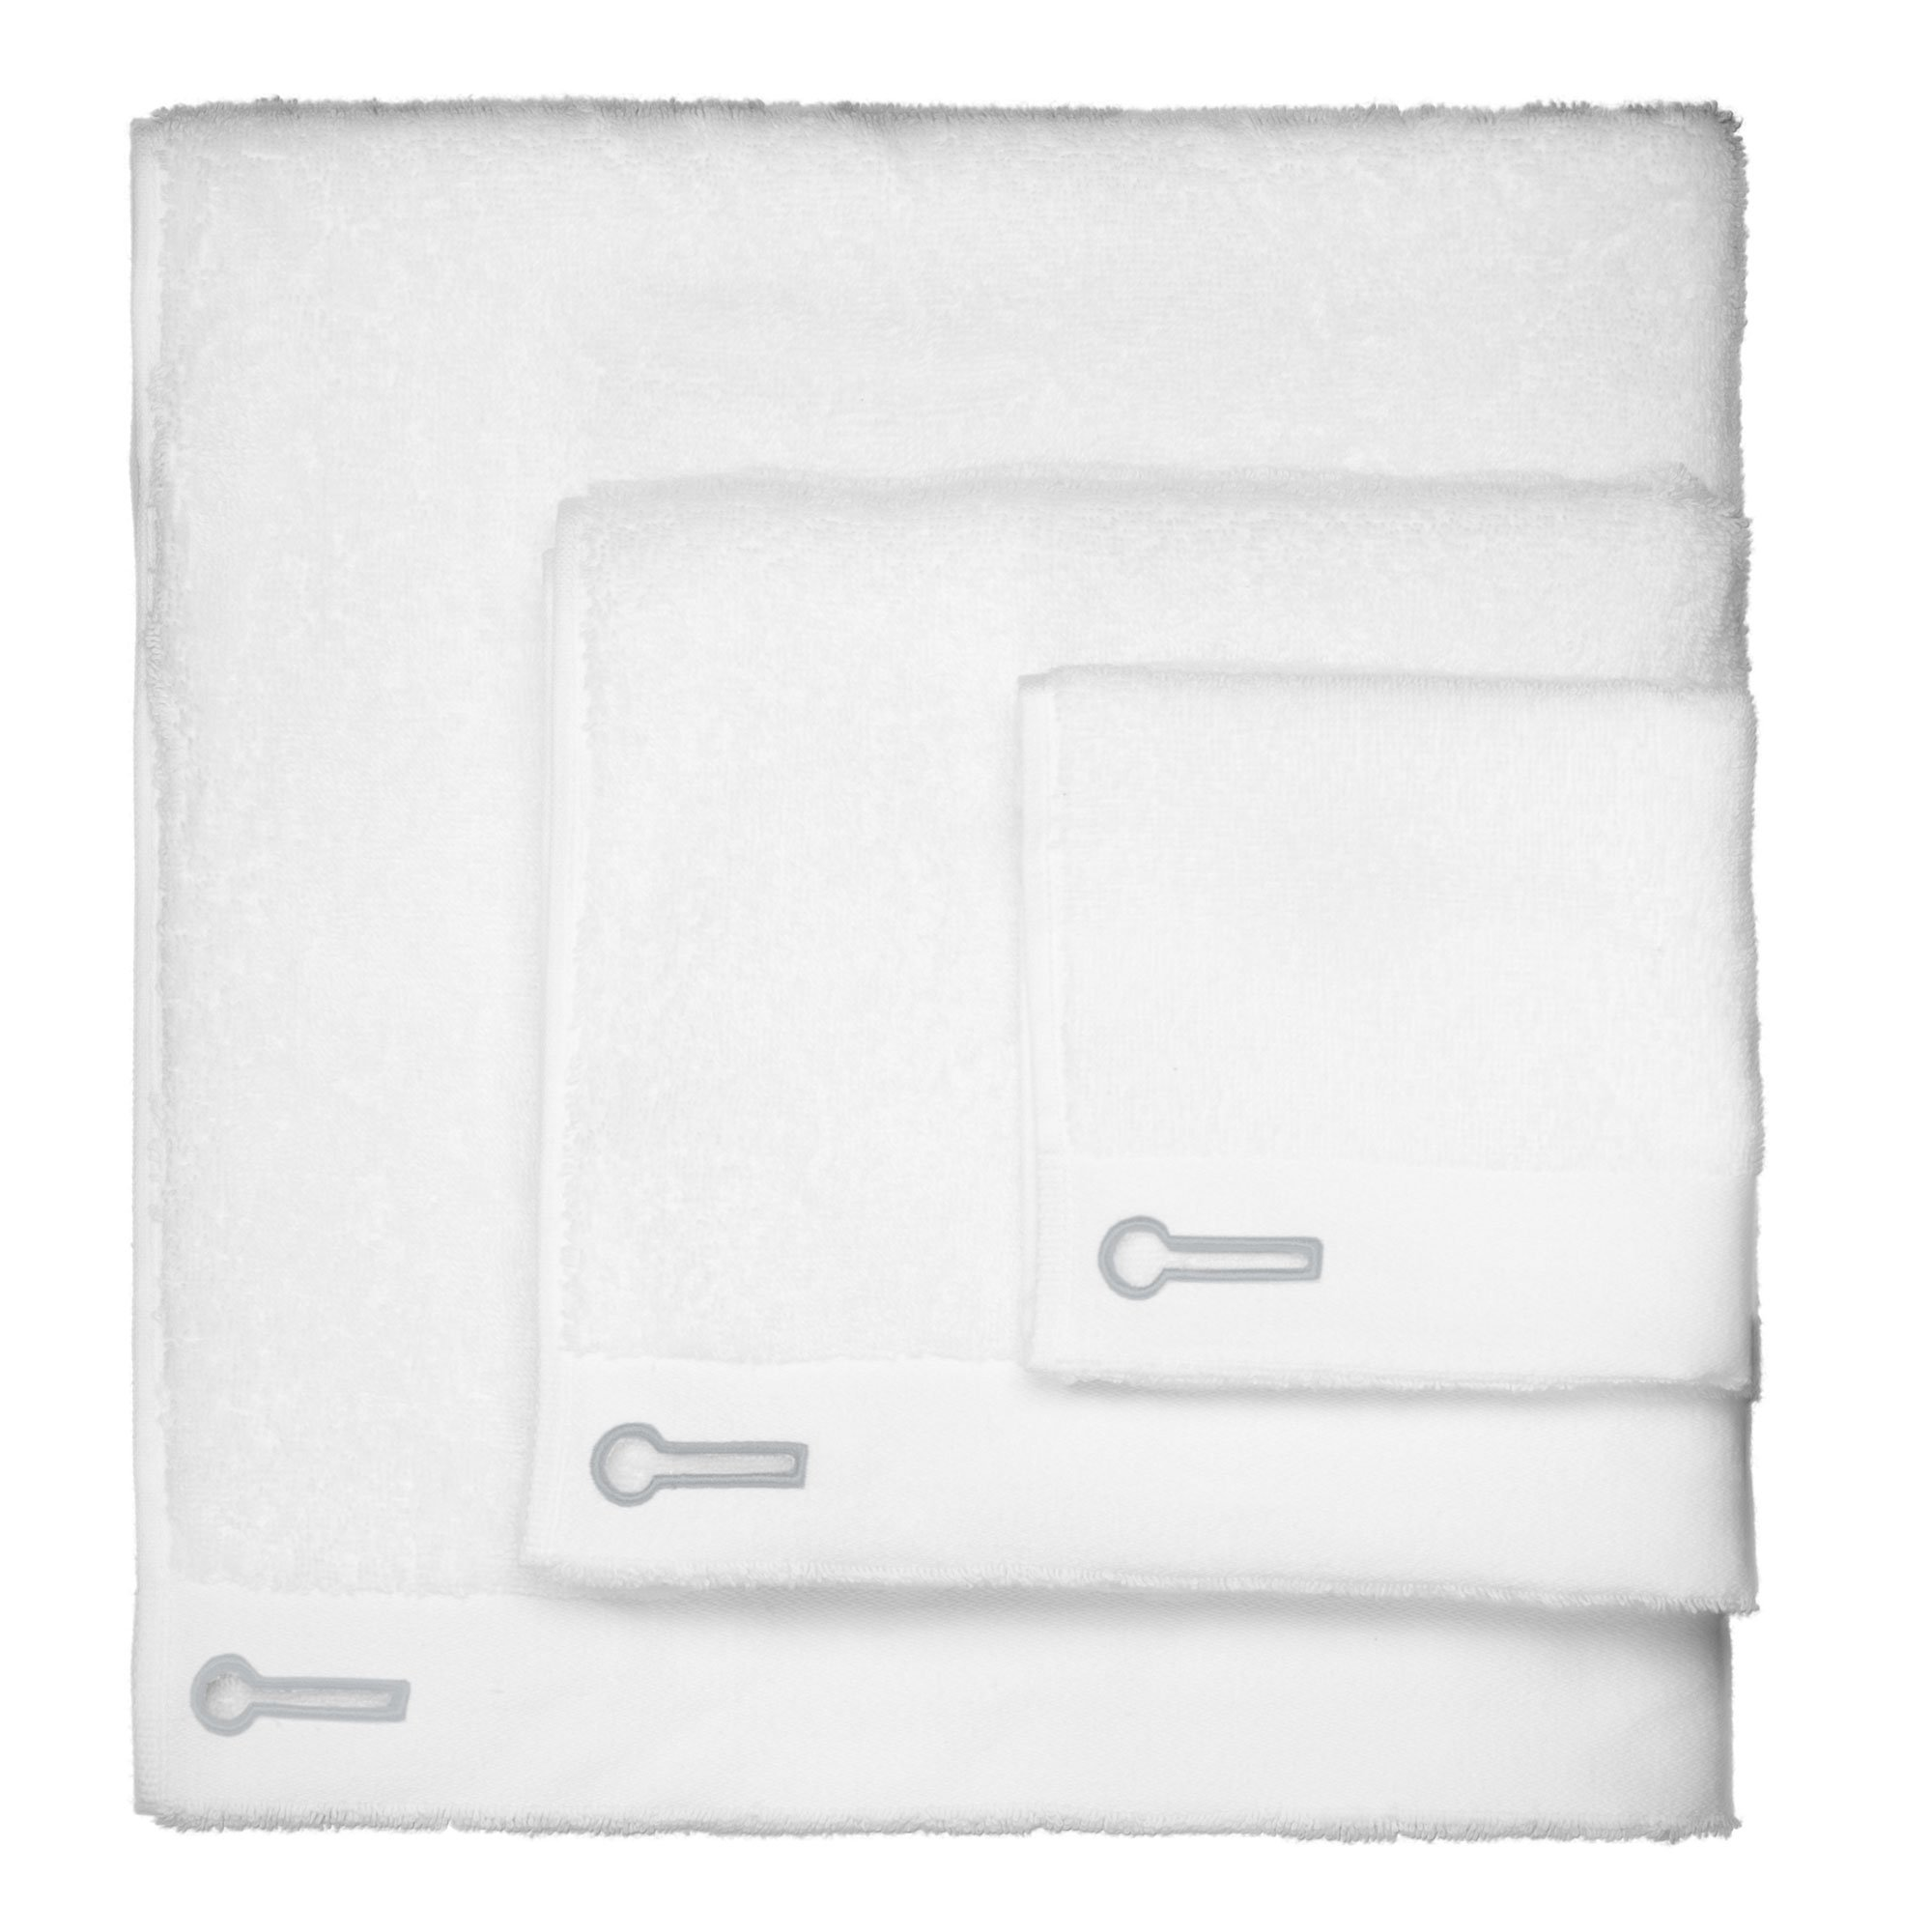 Set of 3 Luxurious White Cotton Towels Including one Generous Size Bath Towel, one Face Towel and one Washcloth Each with Stone Grey Embroidery